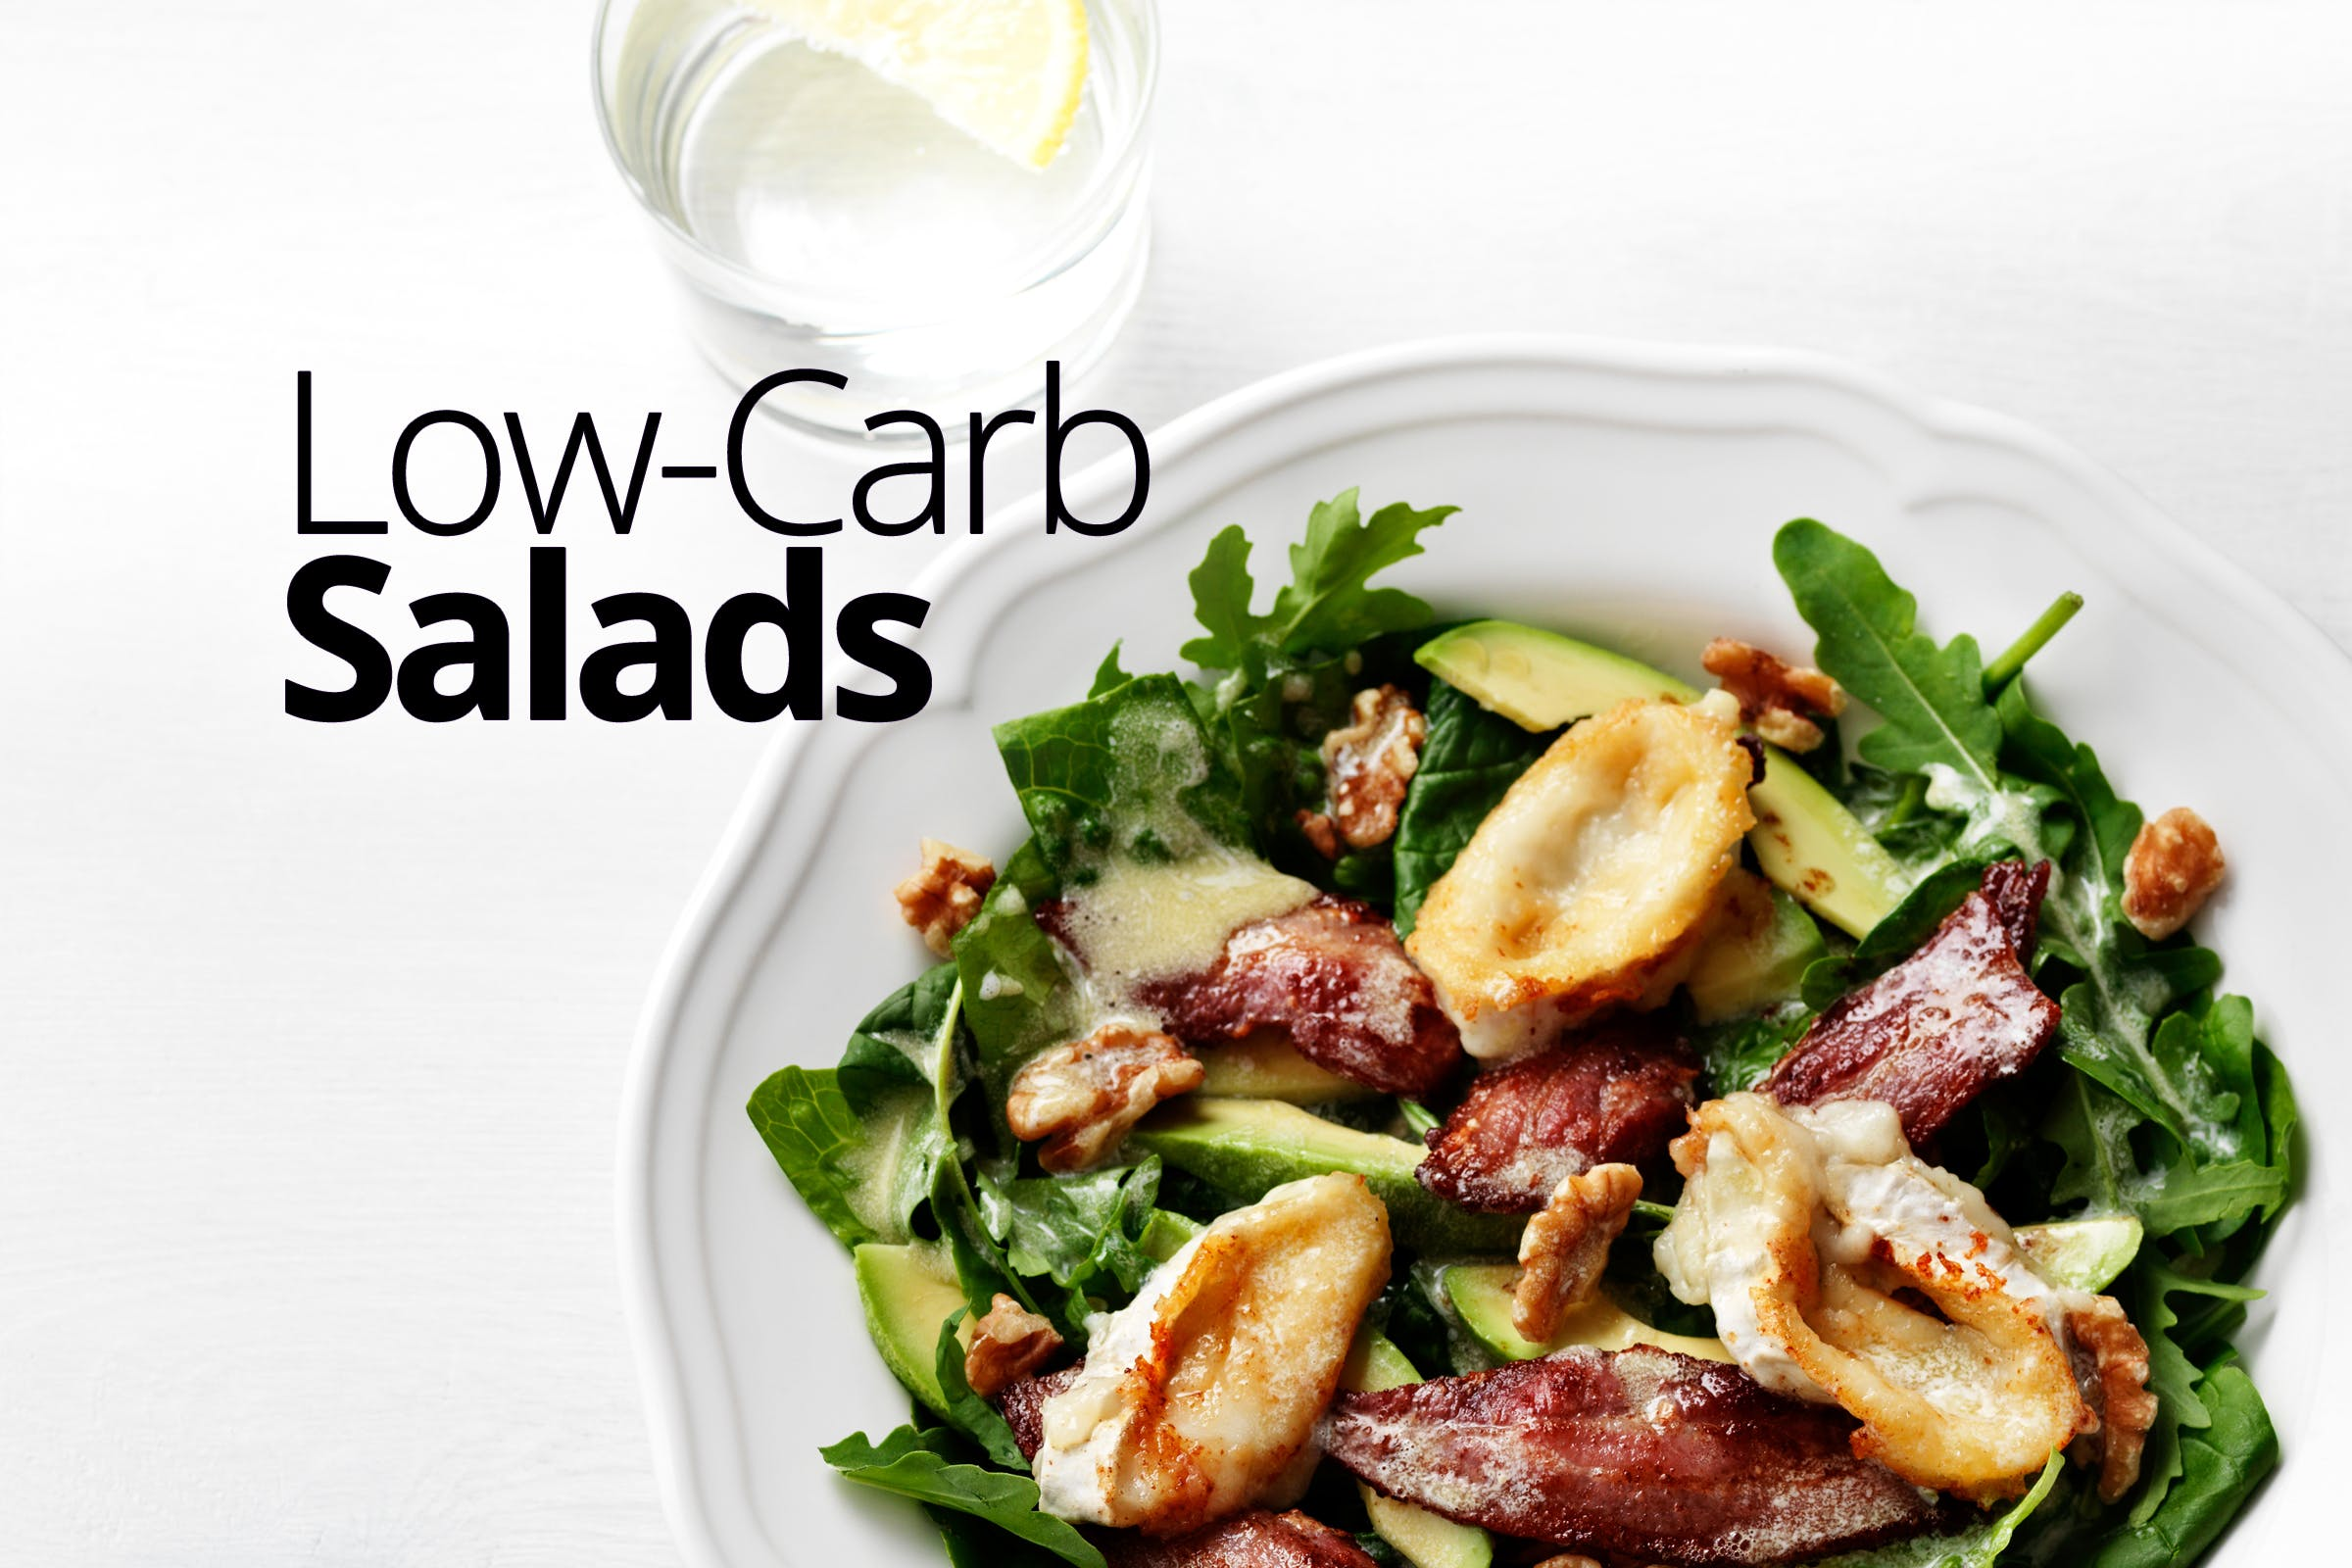 Top 30 low-carb salads